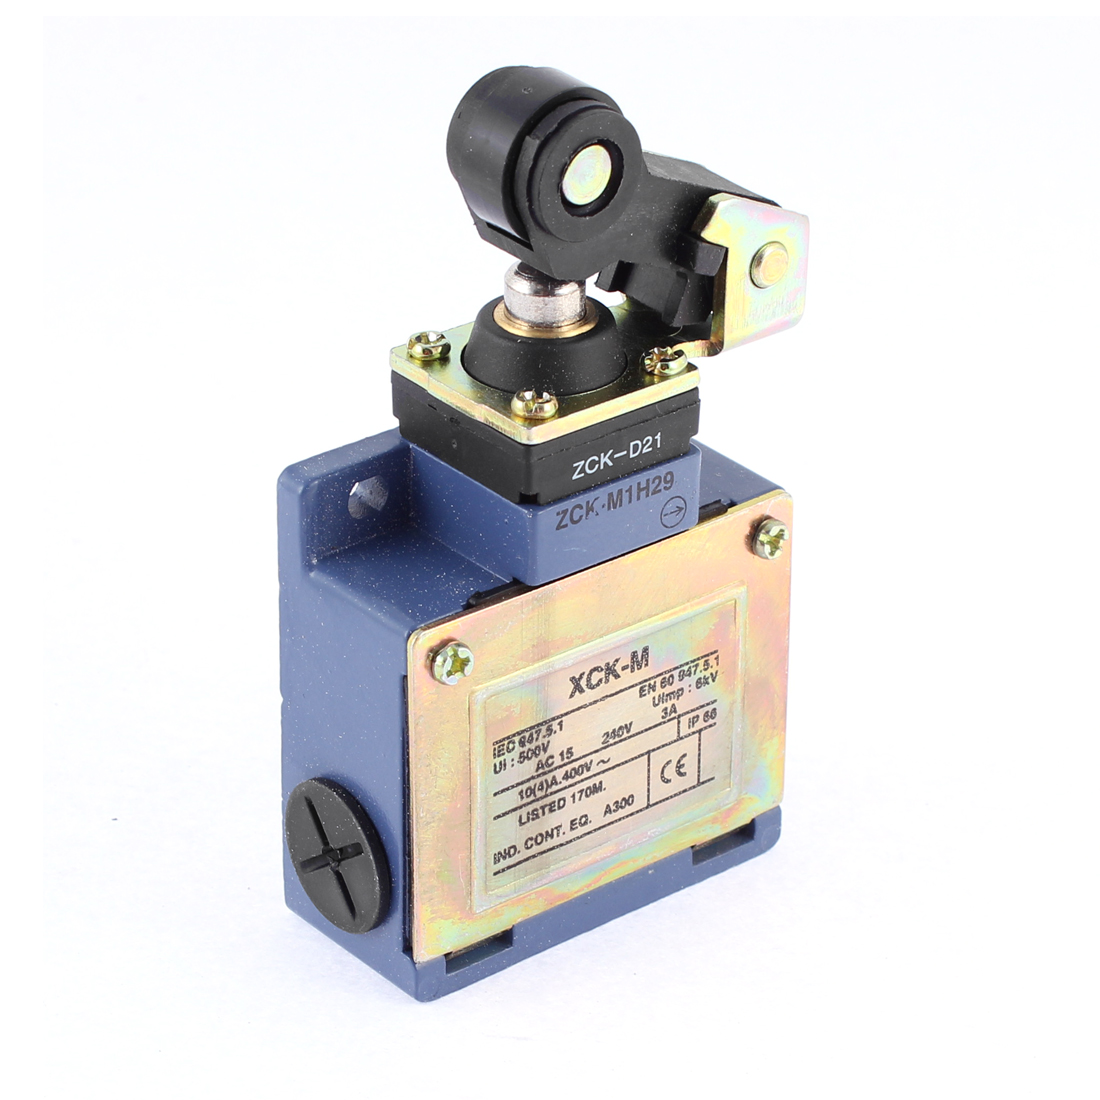 Momentary 1NO 1NC Top Actuator Limit Switch 500V 6KW AC 240V 3A XCK-M